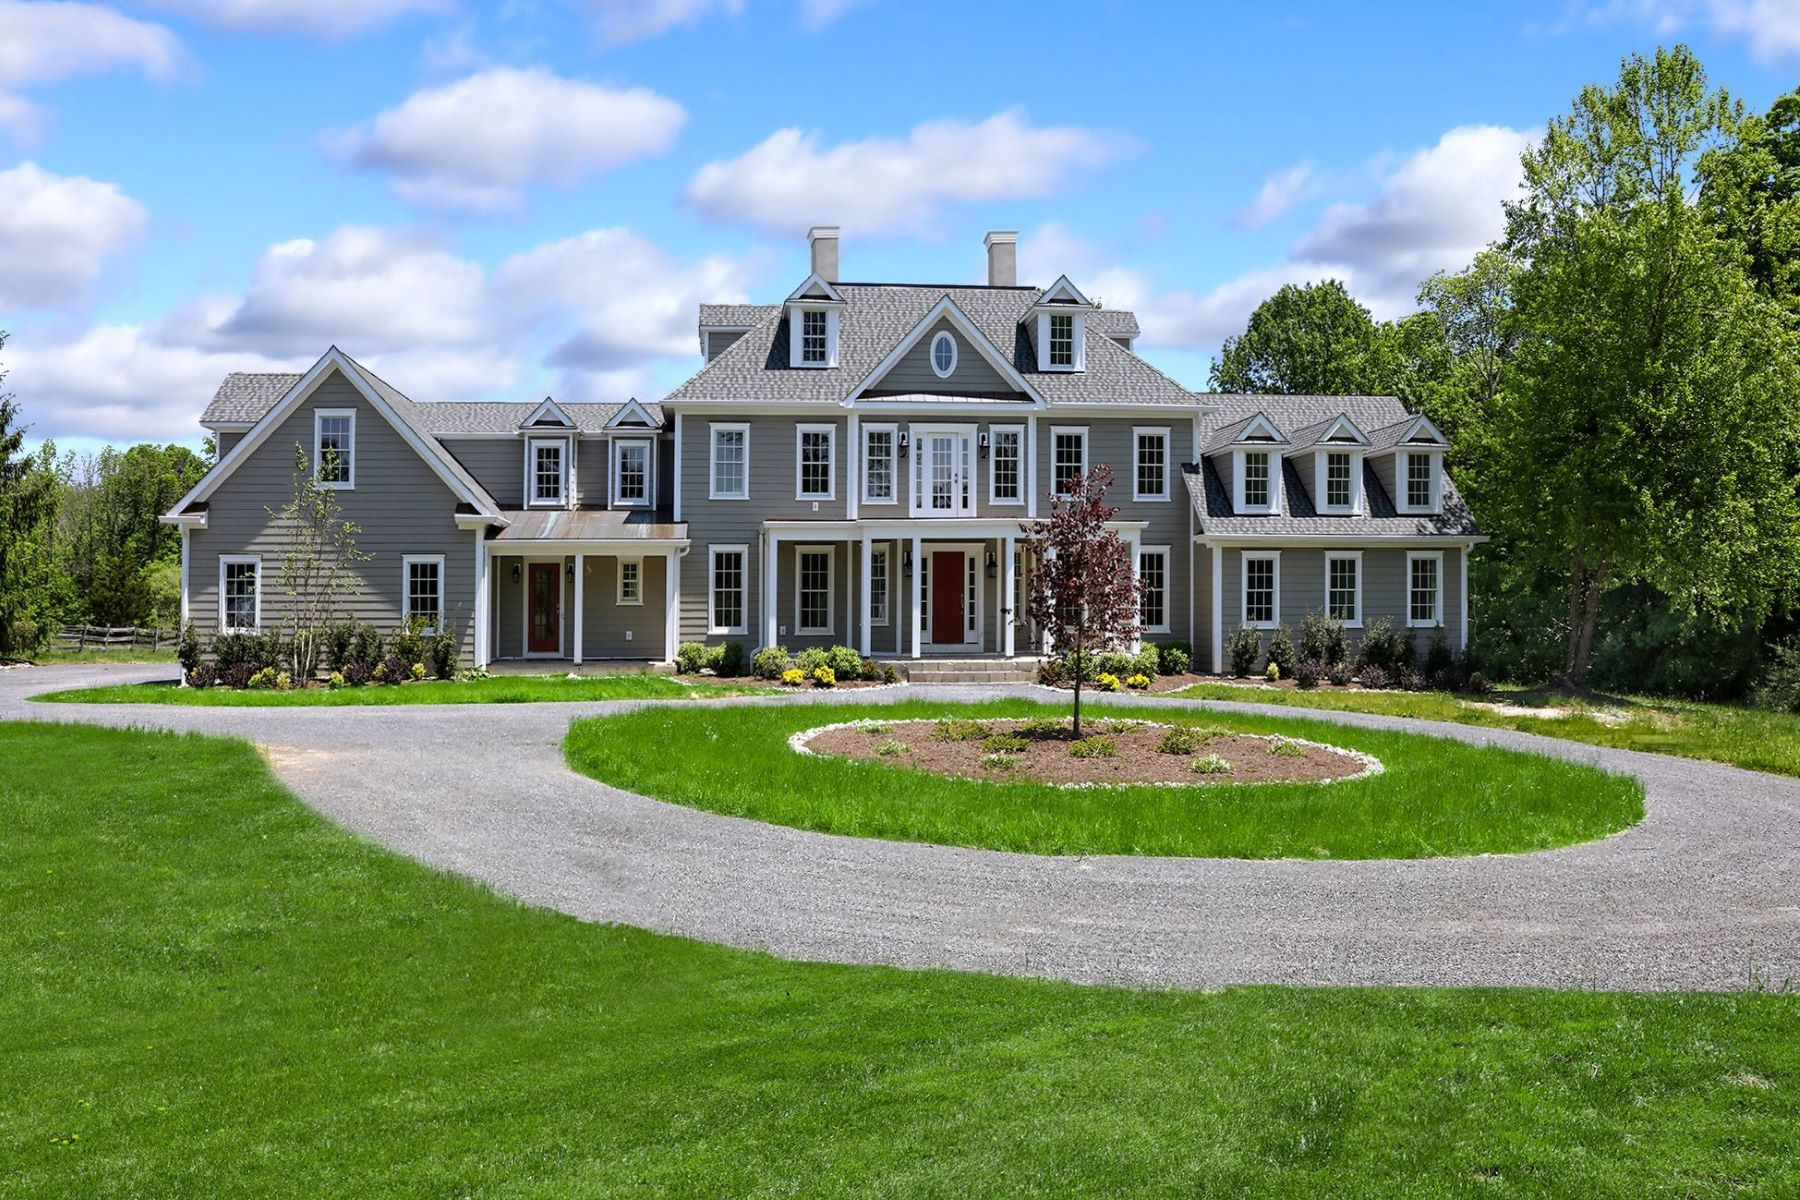 Property für Verkauf beim Every Amenity in this Spectacular Estate-Style Home 114 Federal Twist Road, Stockton, New Jersey 08559 Vereinigte Staaten